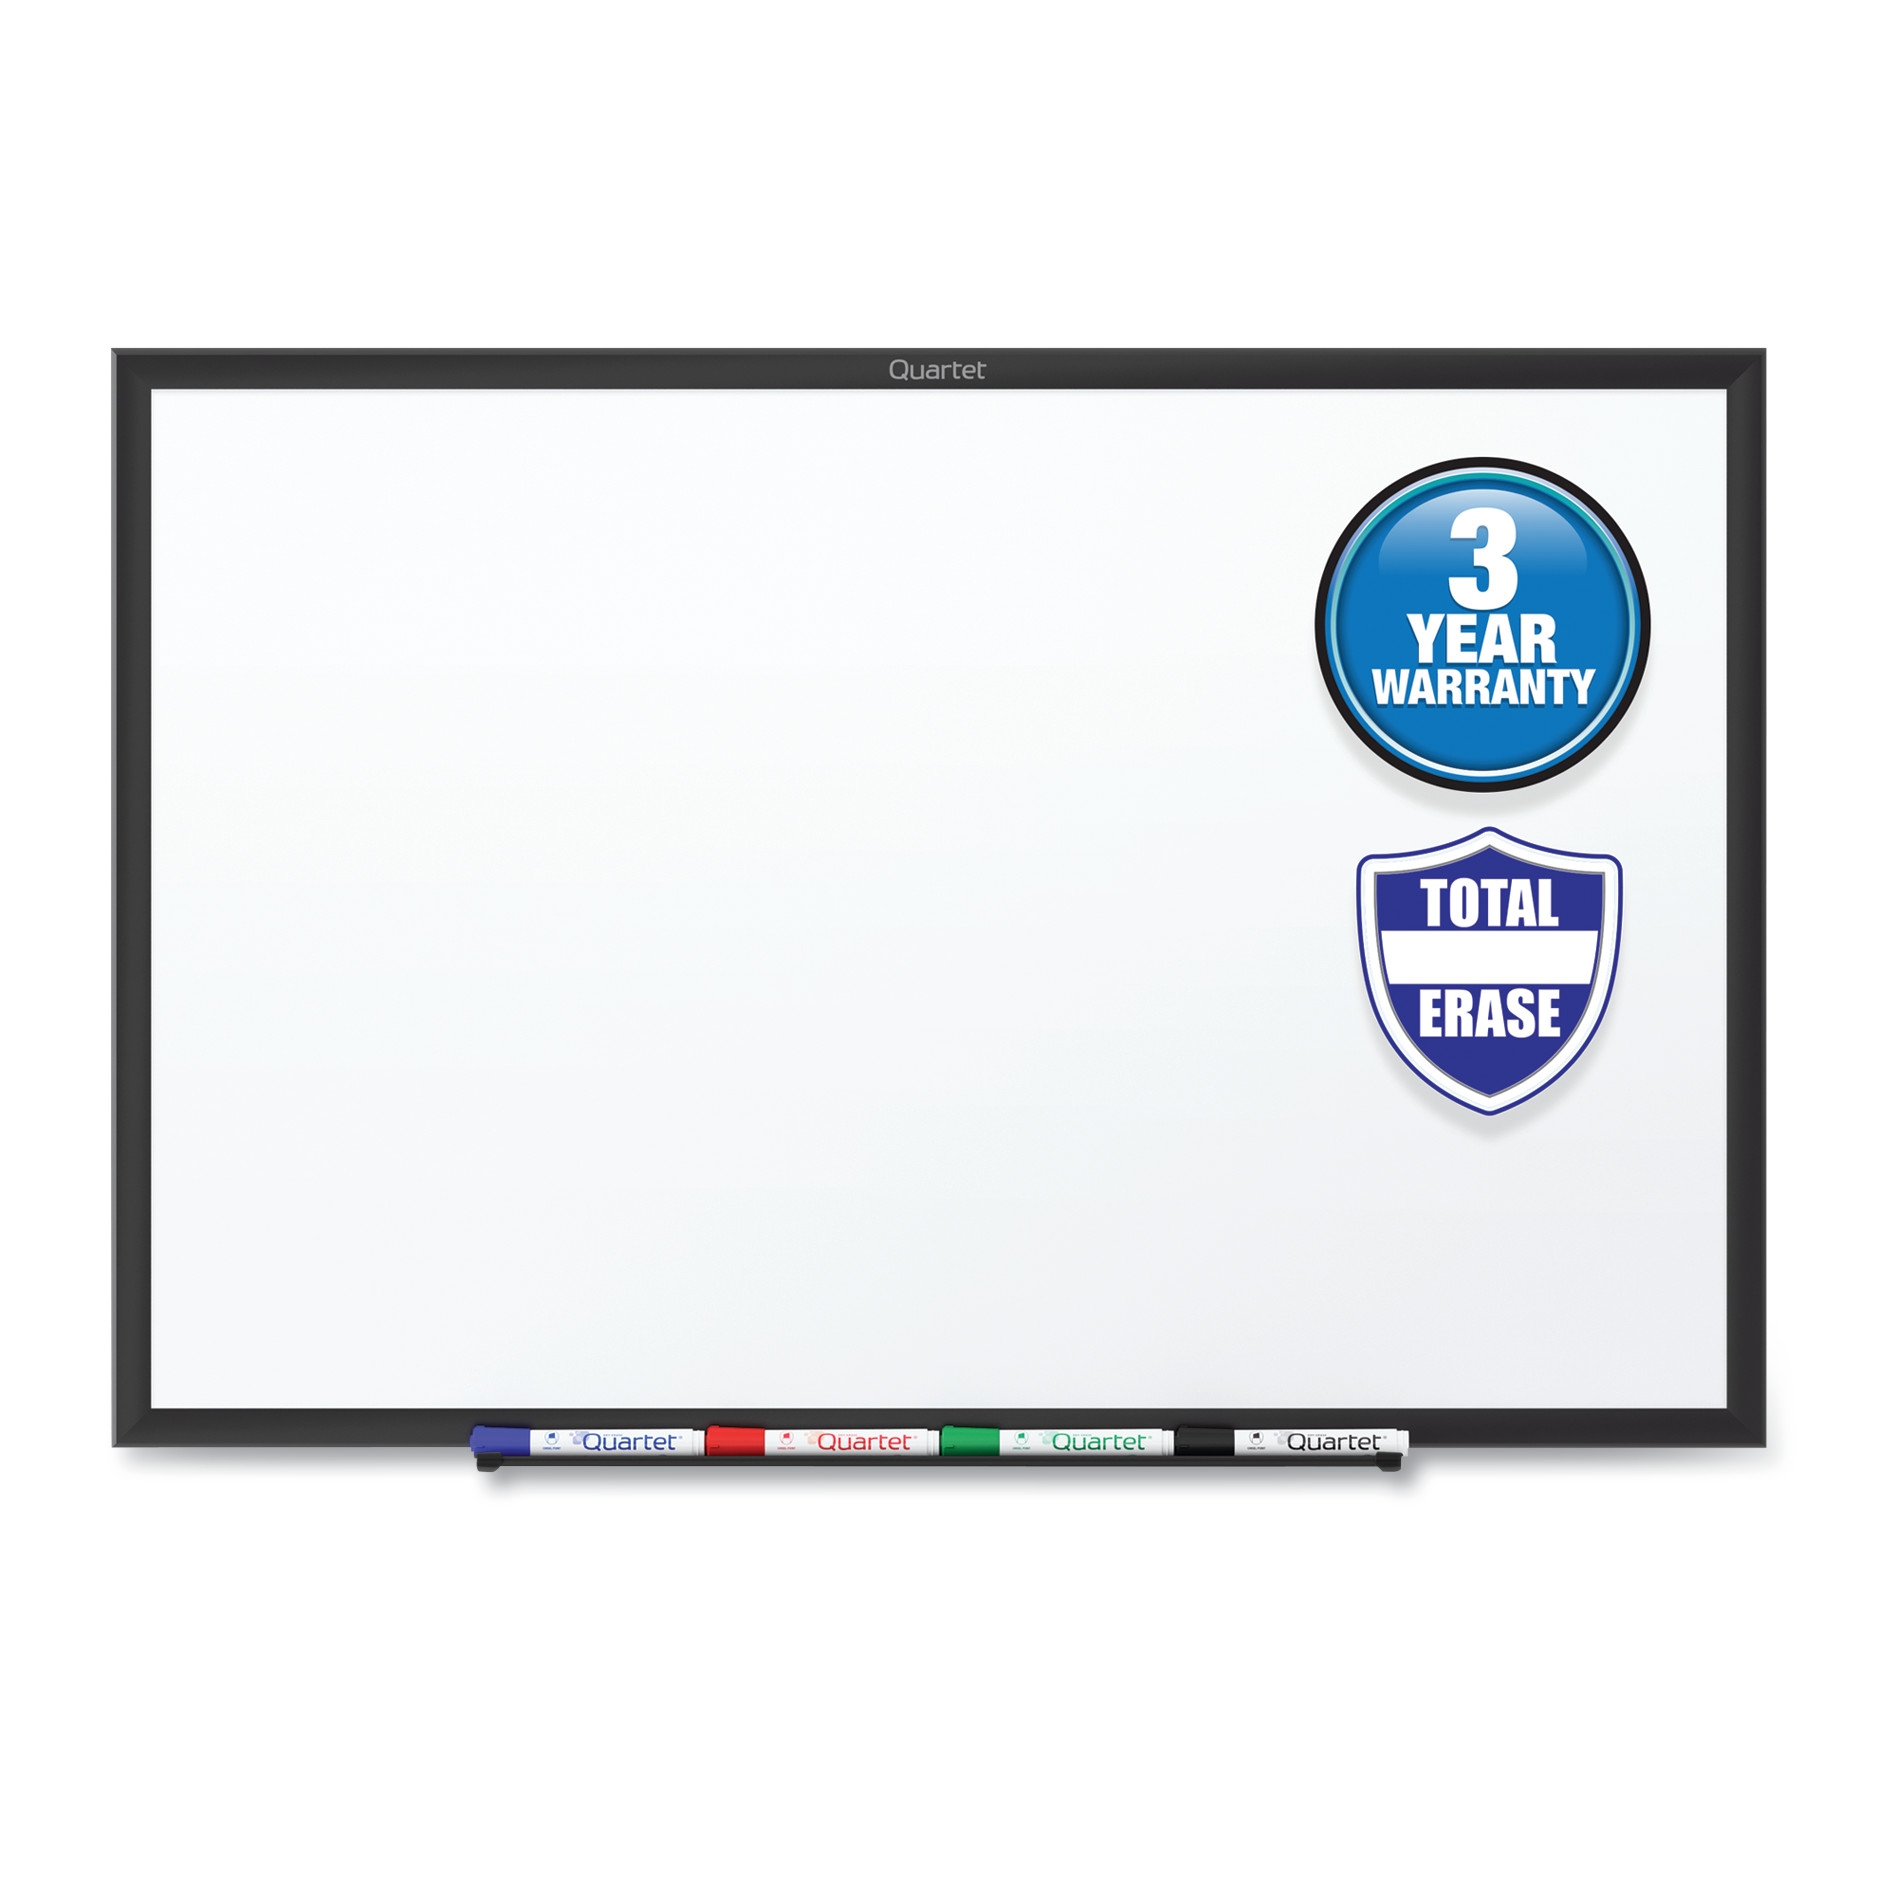 Picture of Classic Series Total Erase Dry Erase Board, 48 x 36, White Surface, Black Frame